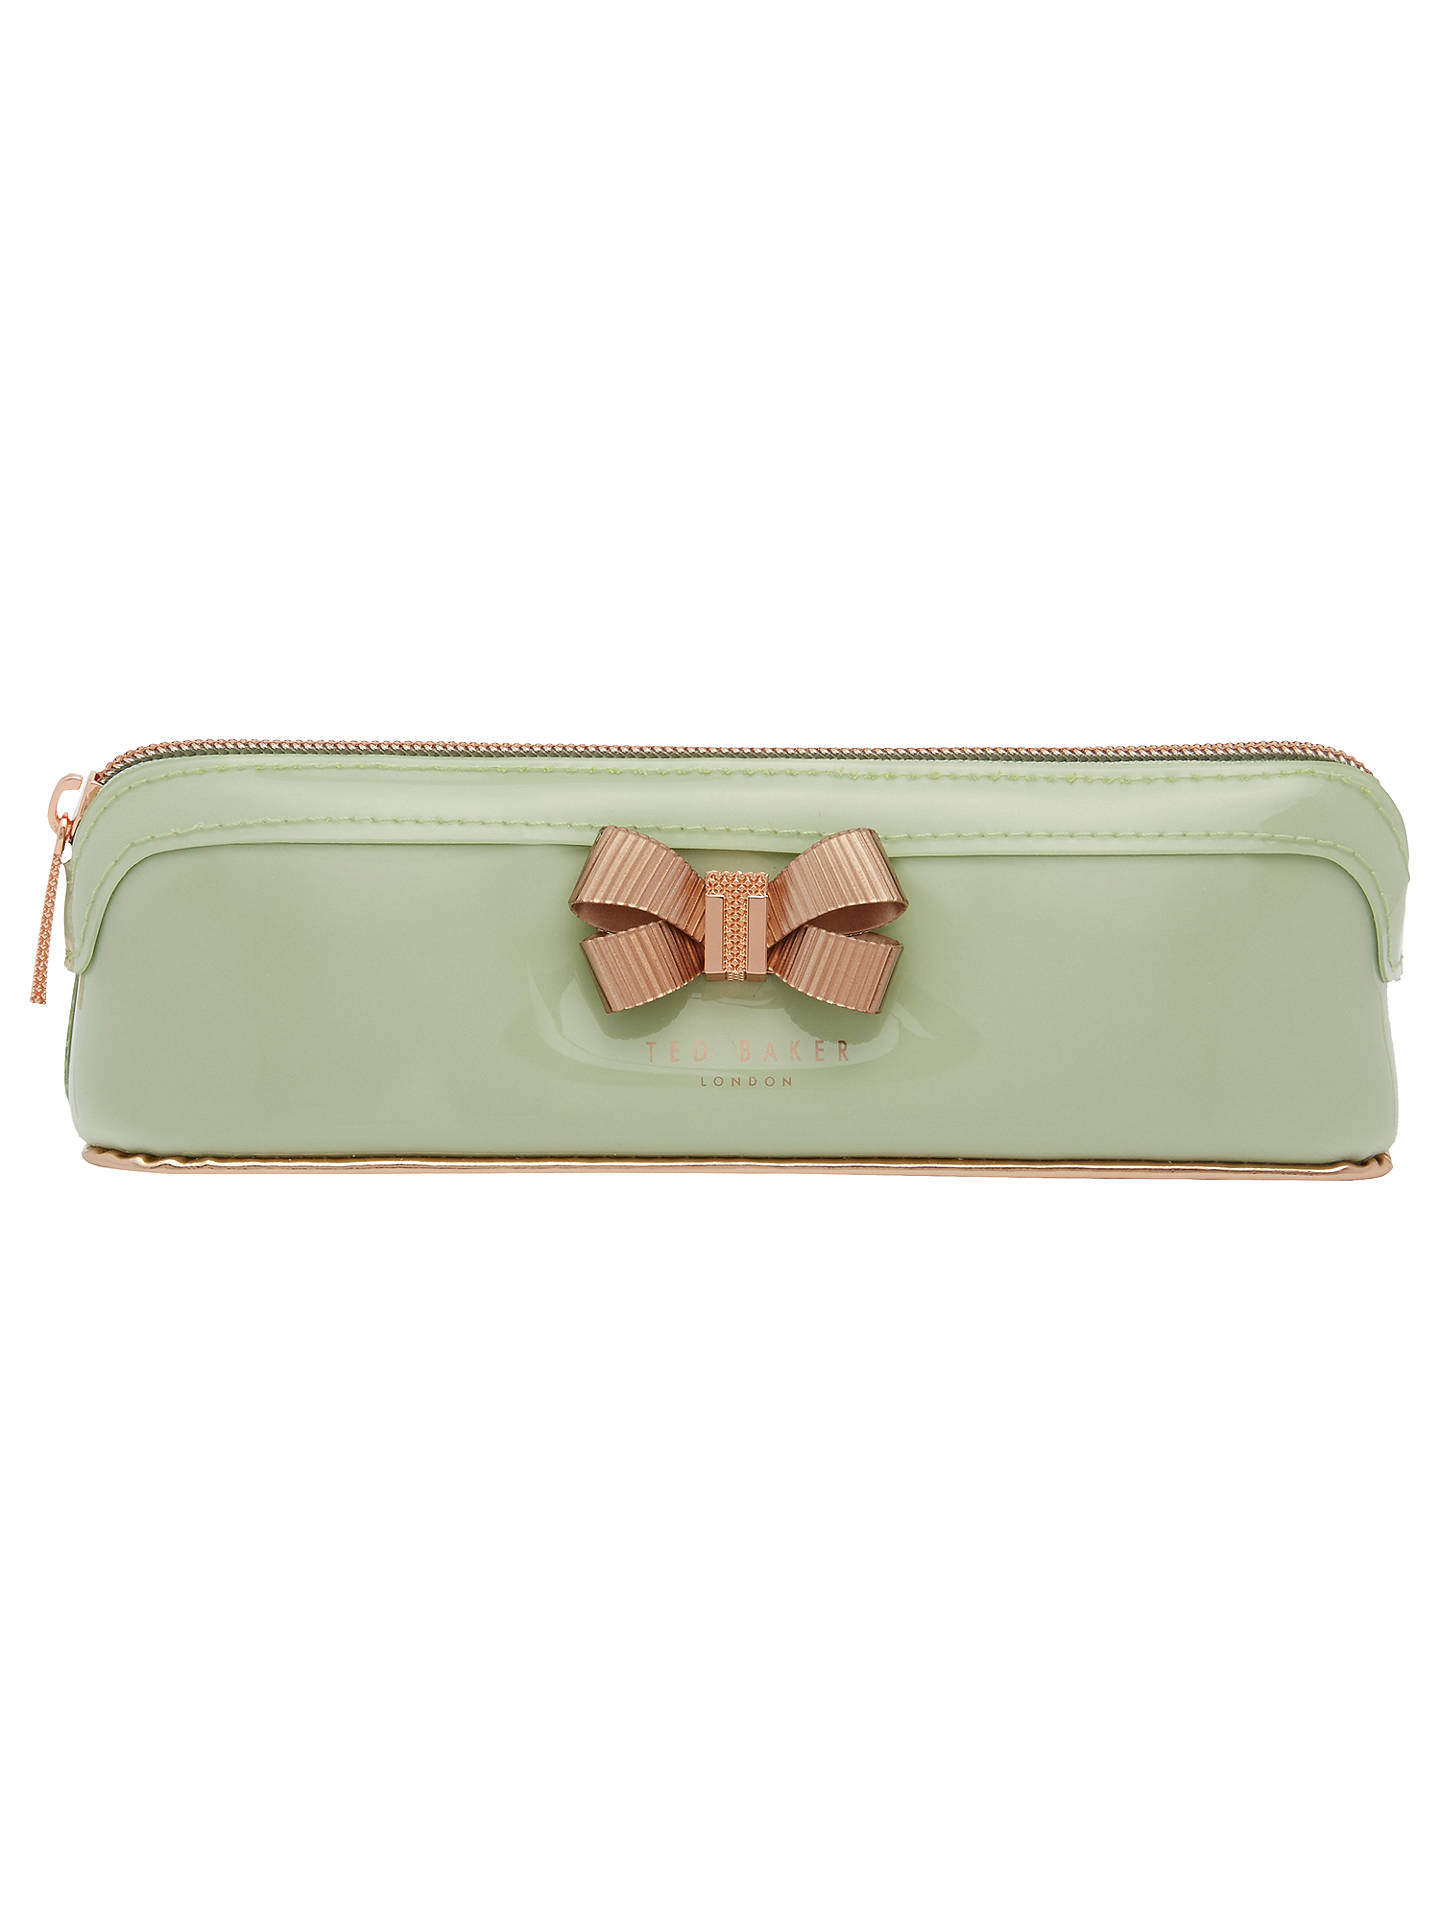 low priced f5116 c875b Ted Baker Lora Bow Pencil Case, Olive